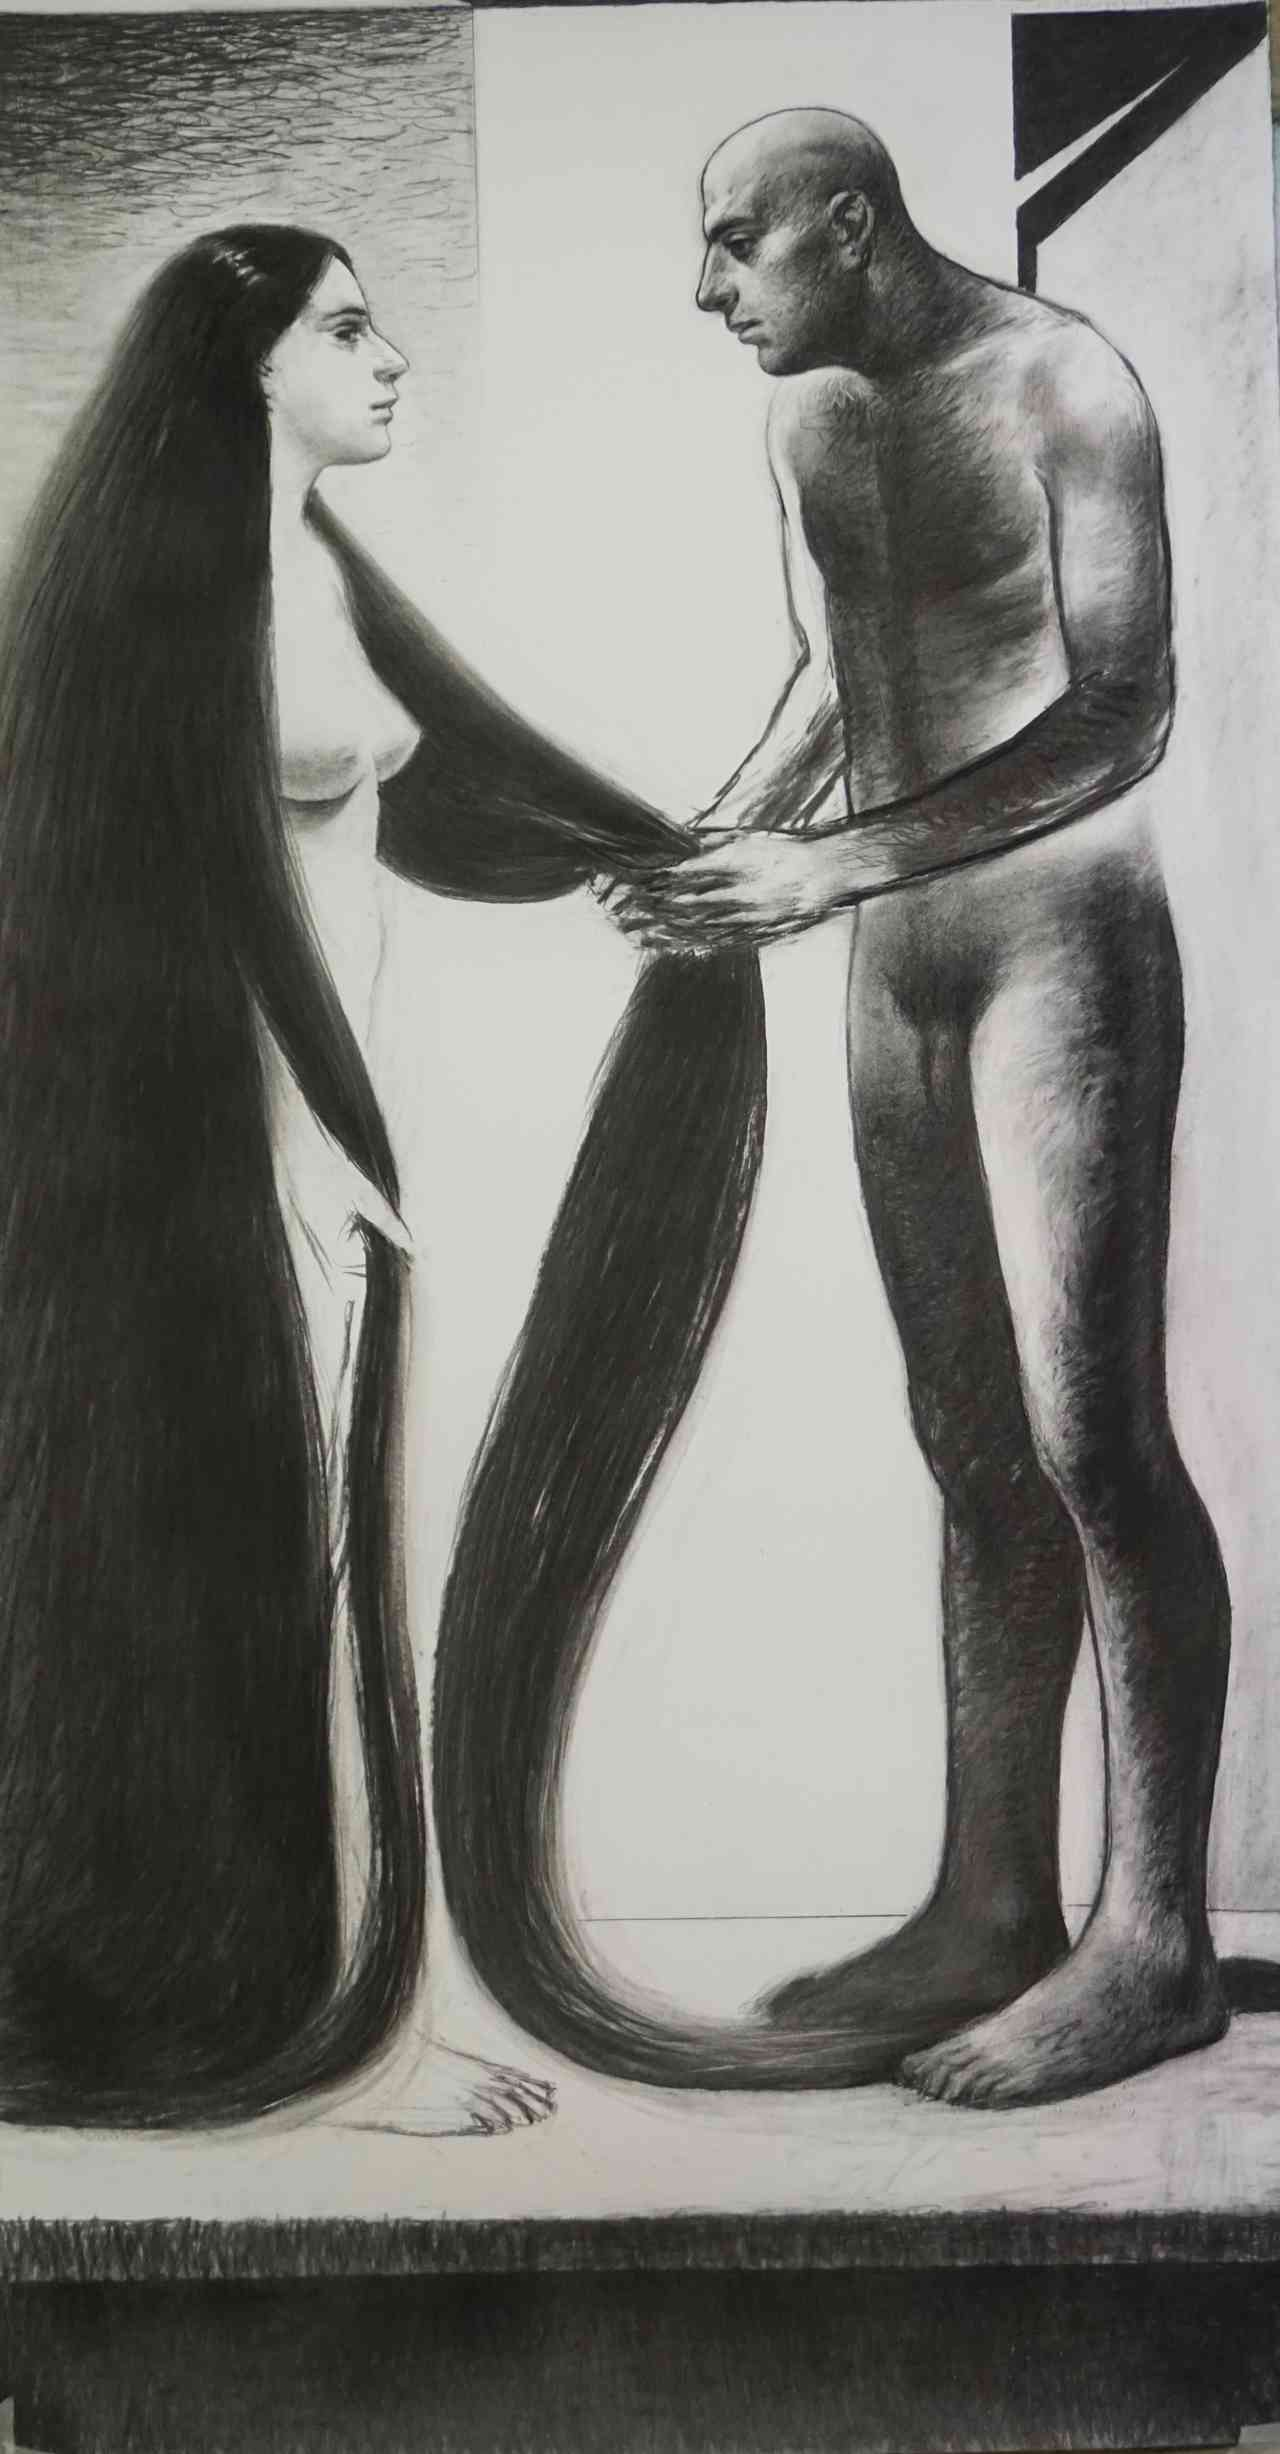 Michalis Manousakis, Untitled, 200 x 100 cm, charcoal on paper